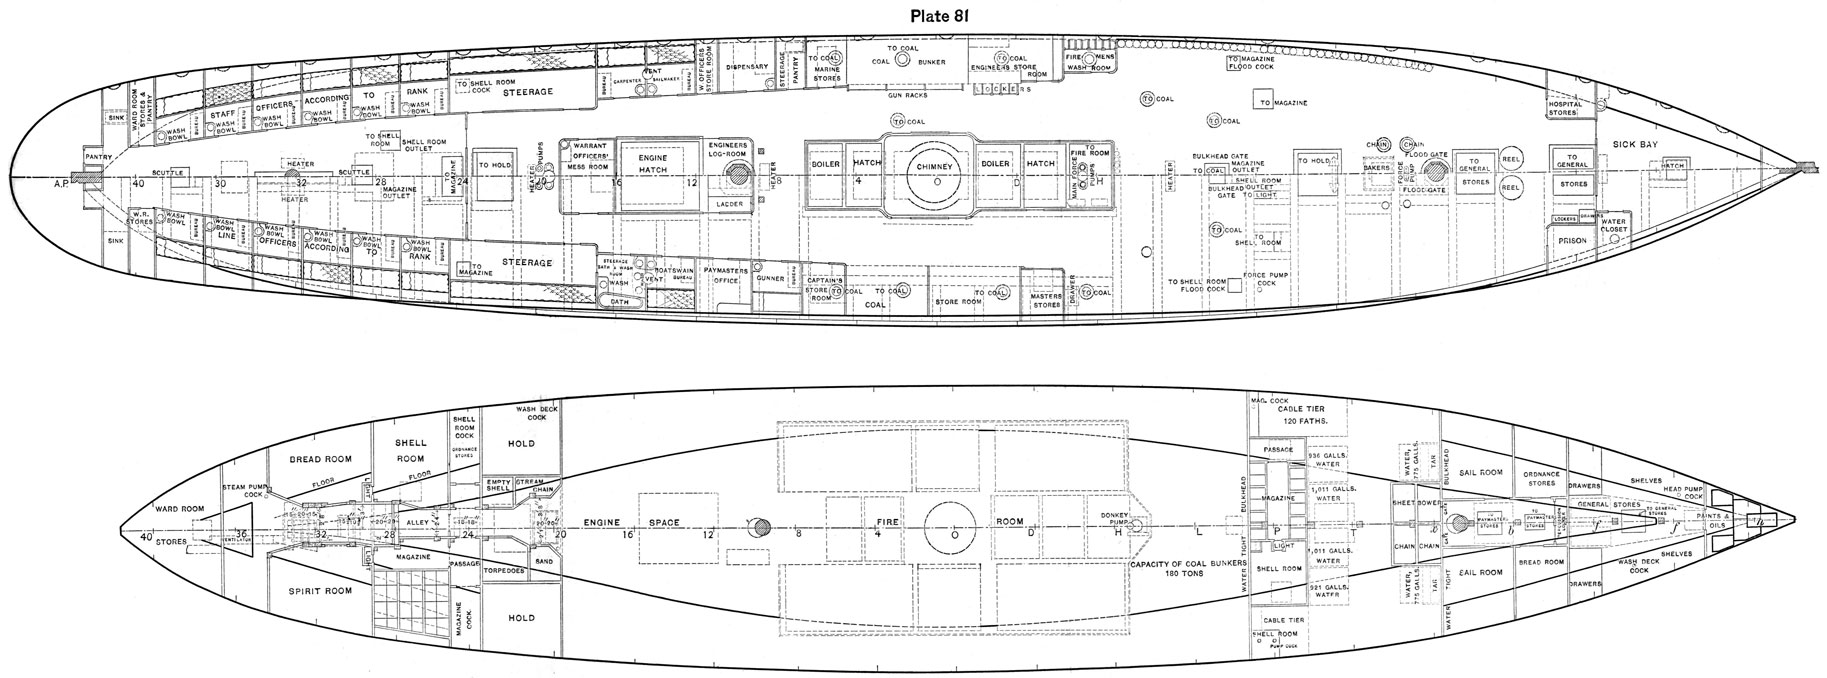 Plate 81, Plan view of ship showing use of all spaces including holds.